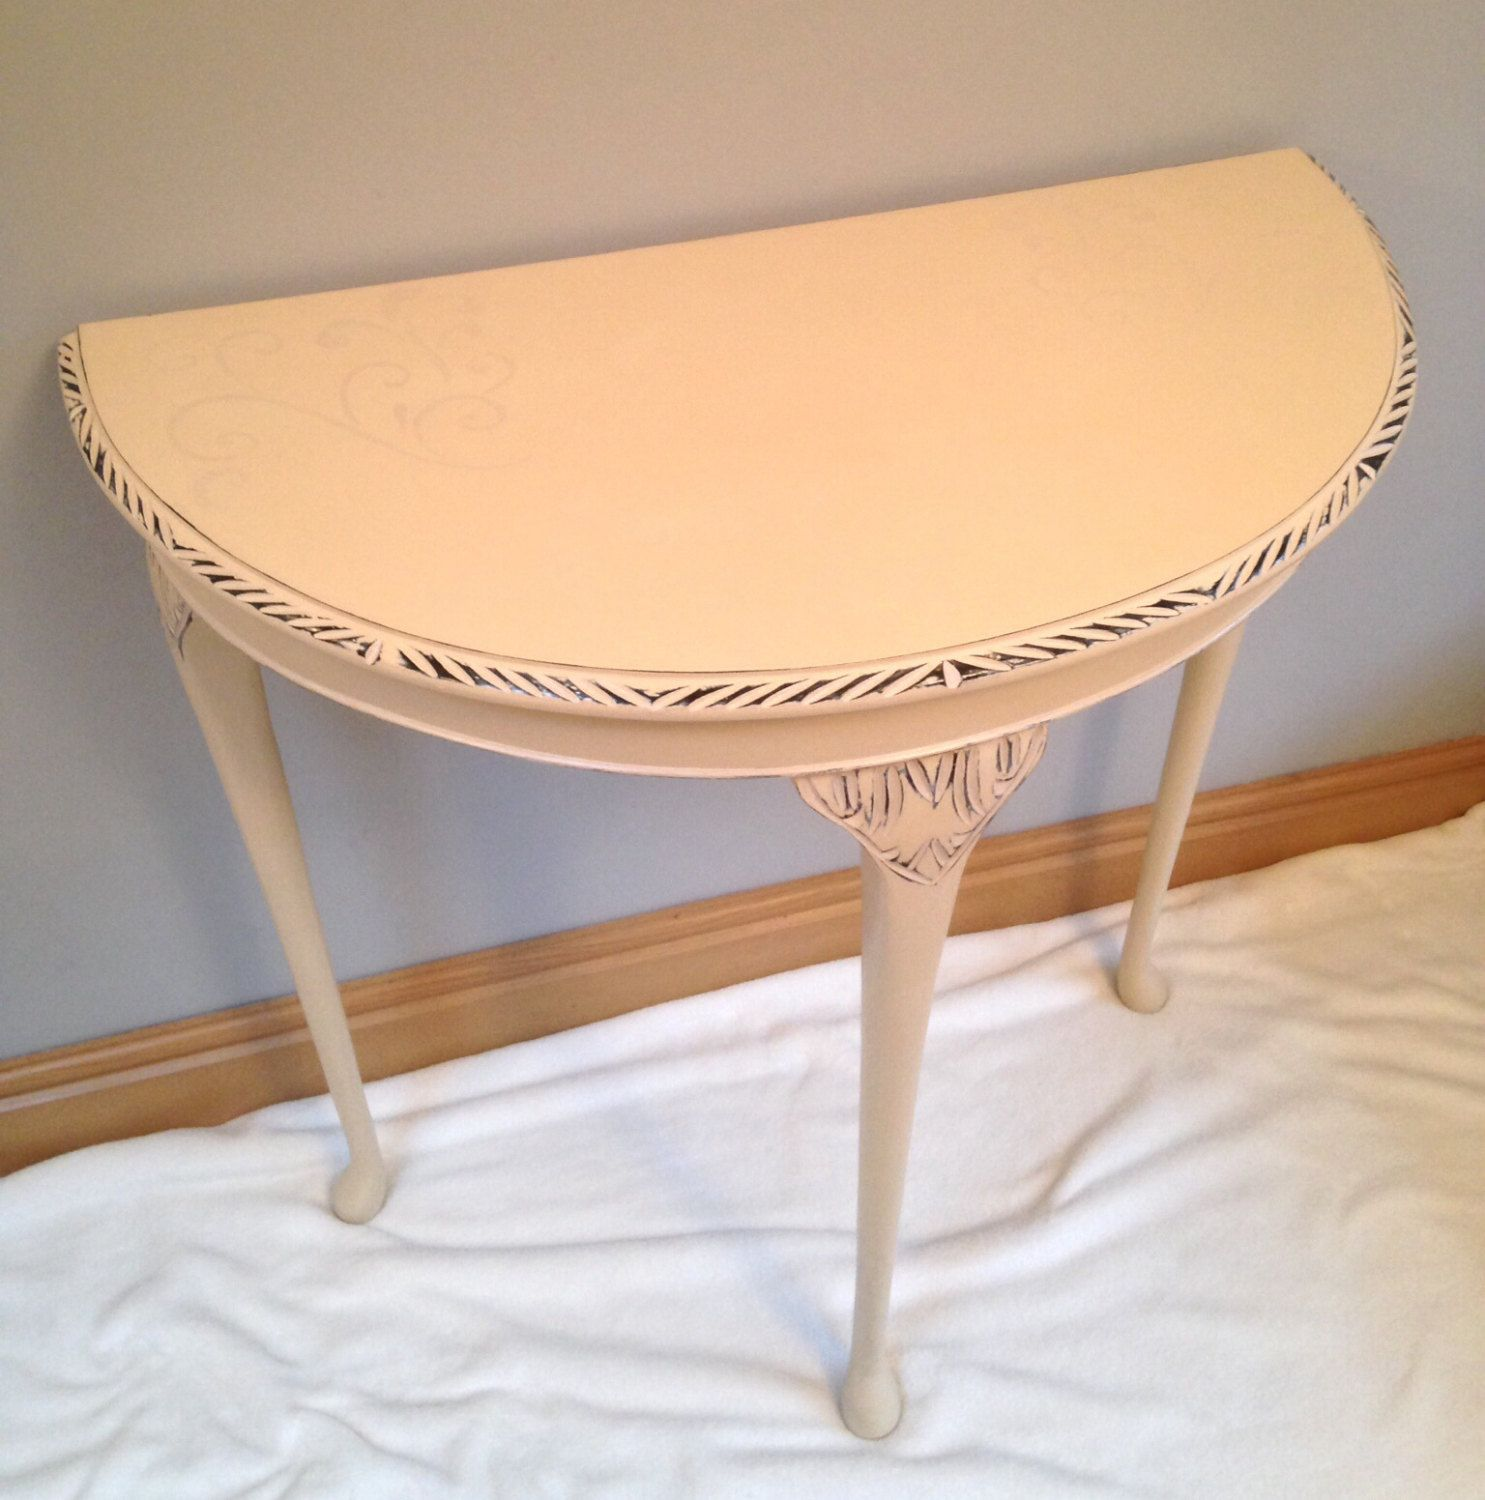 Shabby Chic Half Moon Console/hall Table In Annie Sloan Old Ochre By  Magicmiridesigns On